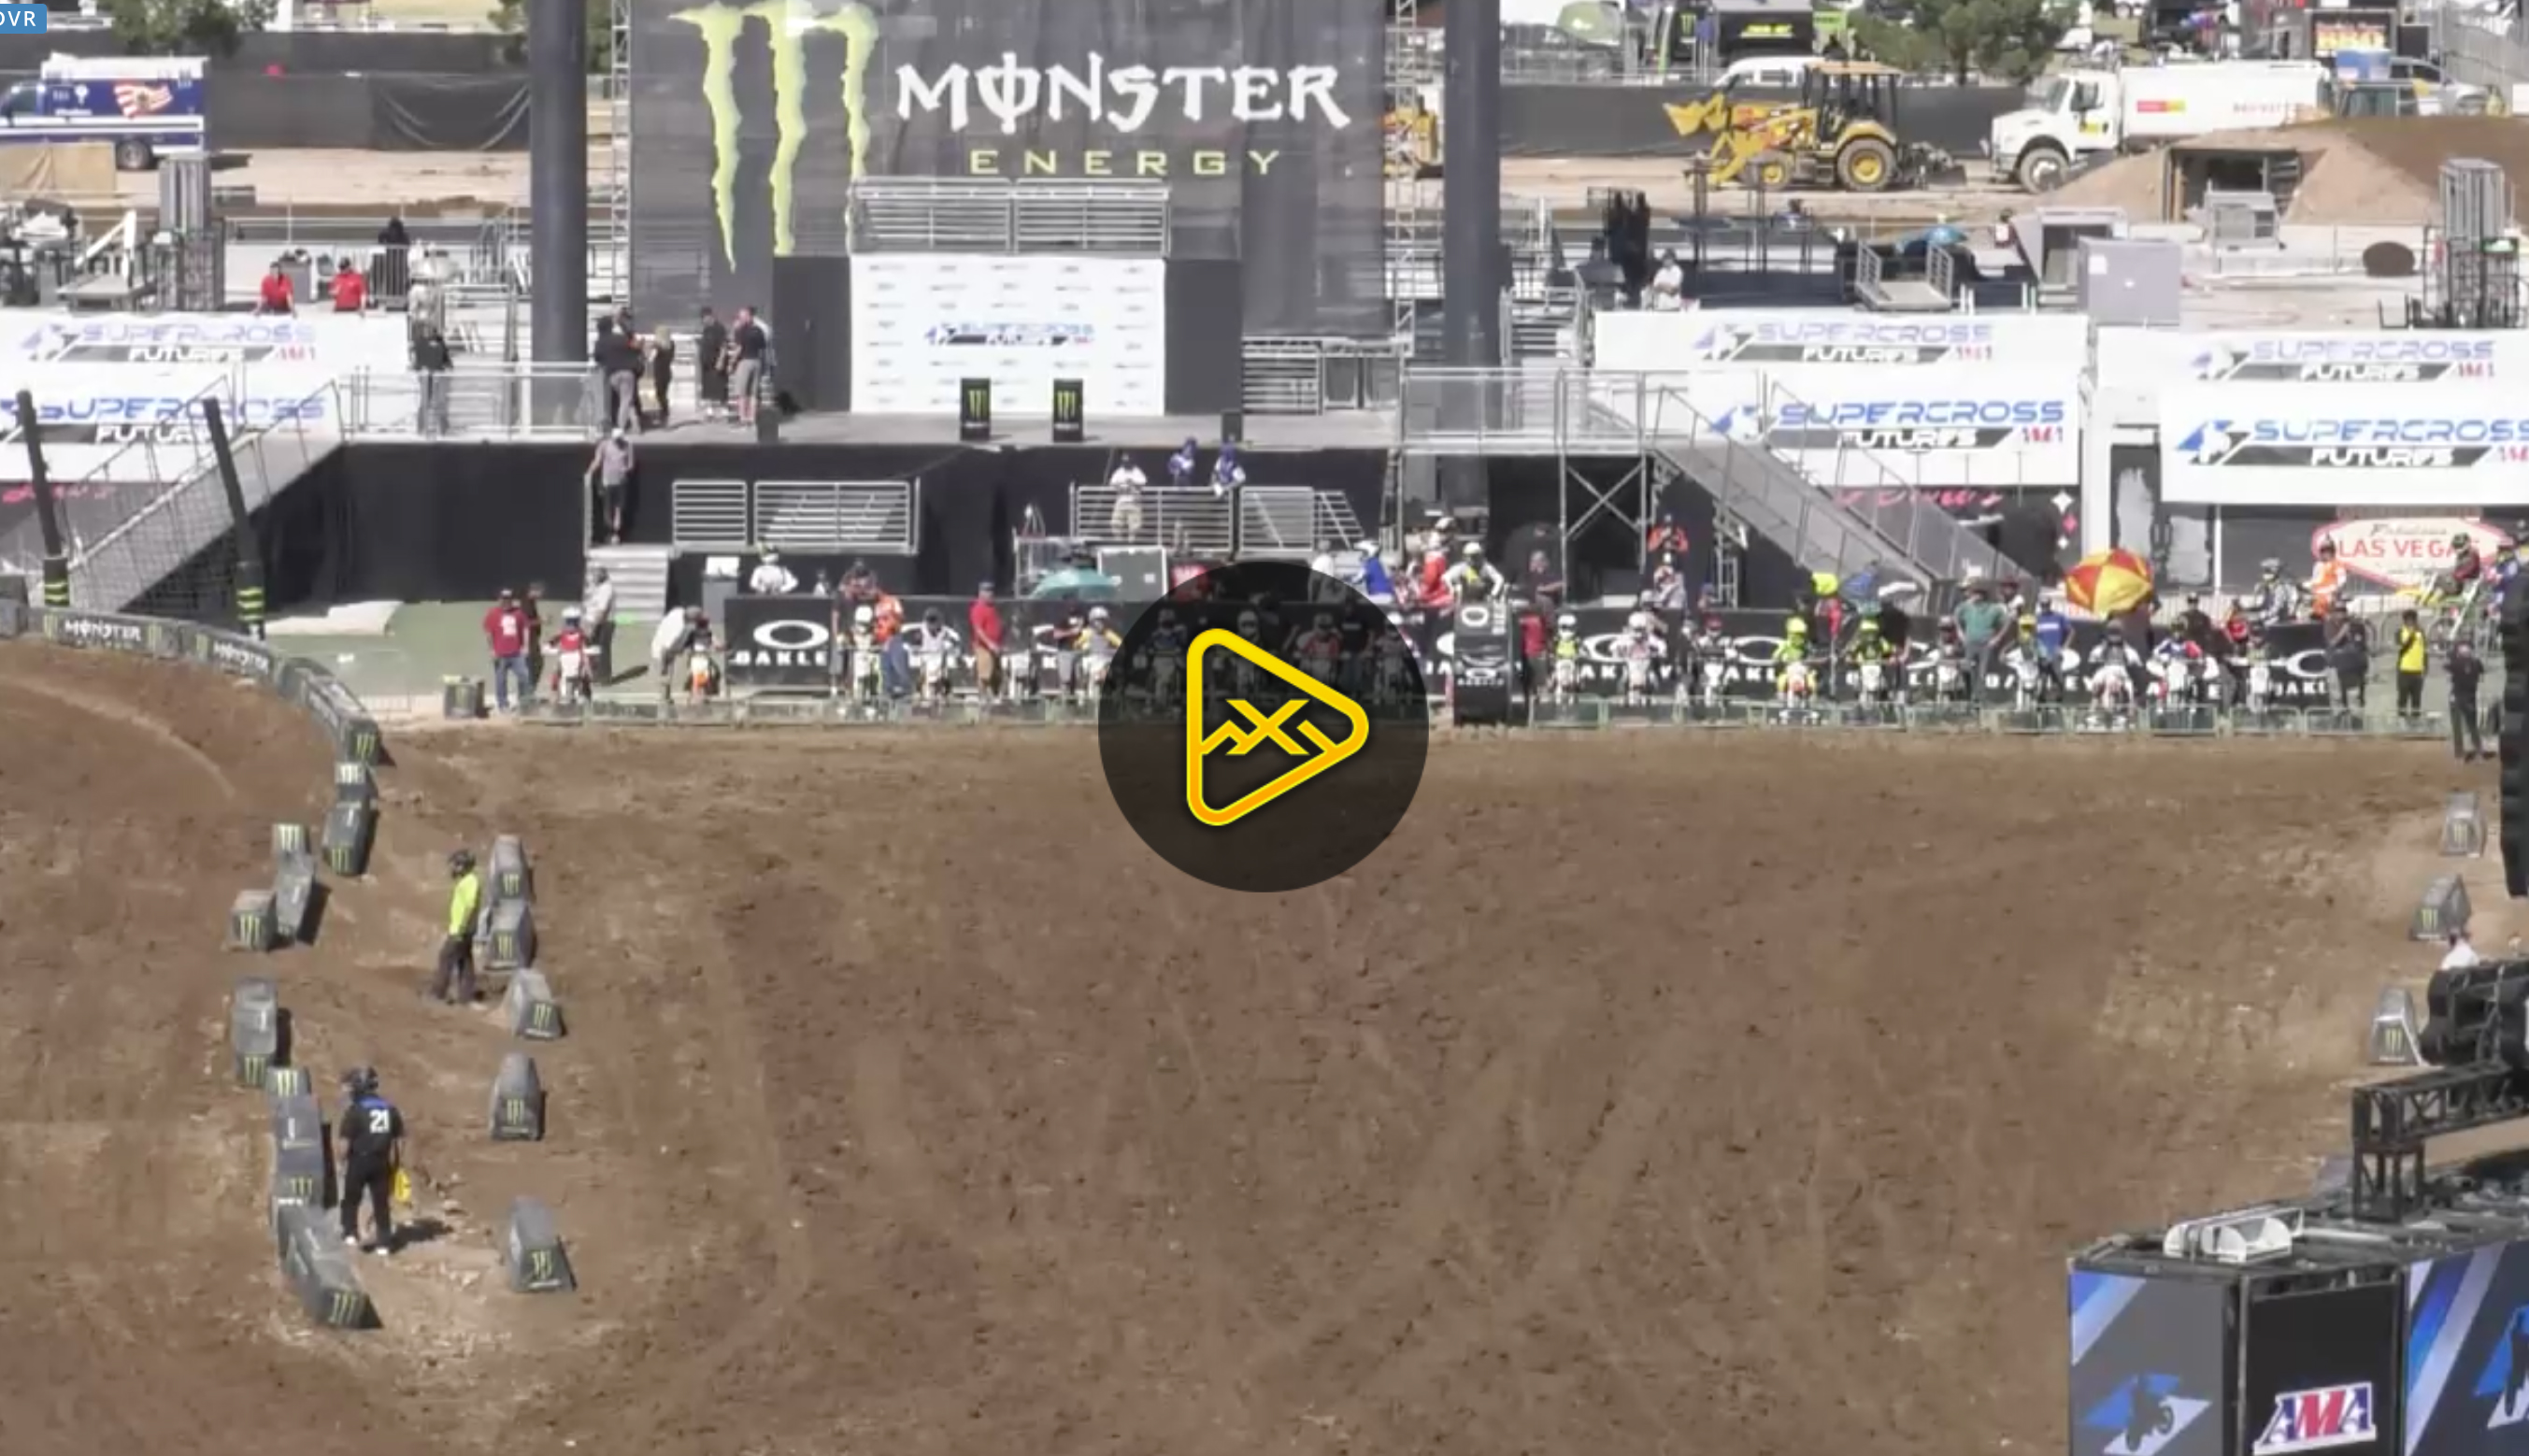 LIVE NOW – Supercross Futures from Las Vegas